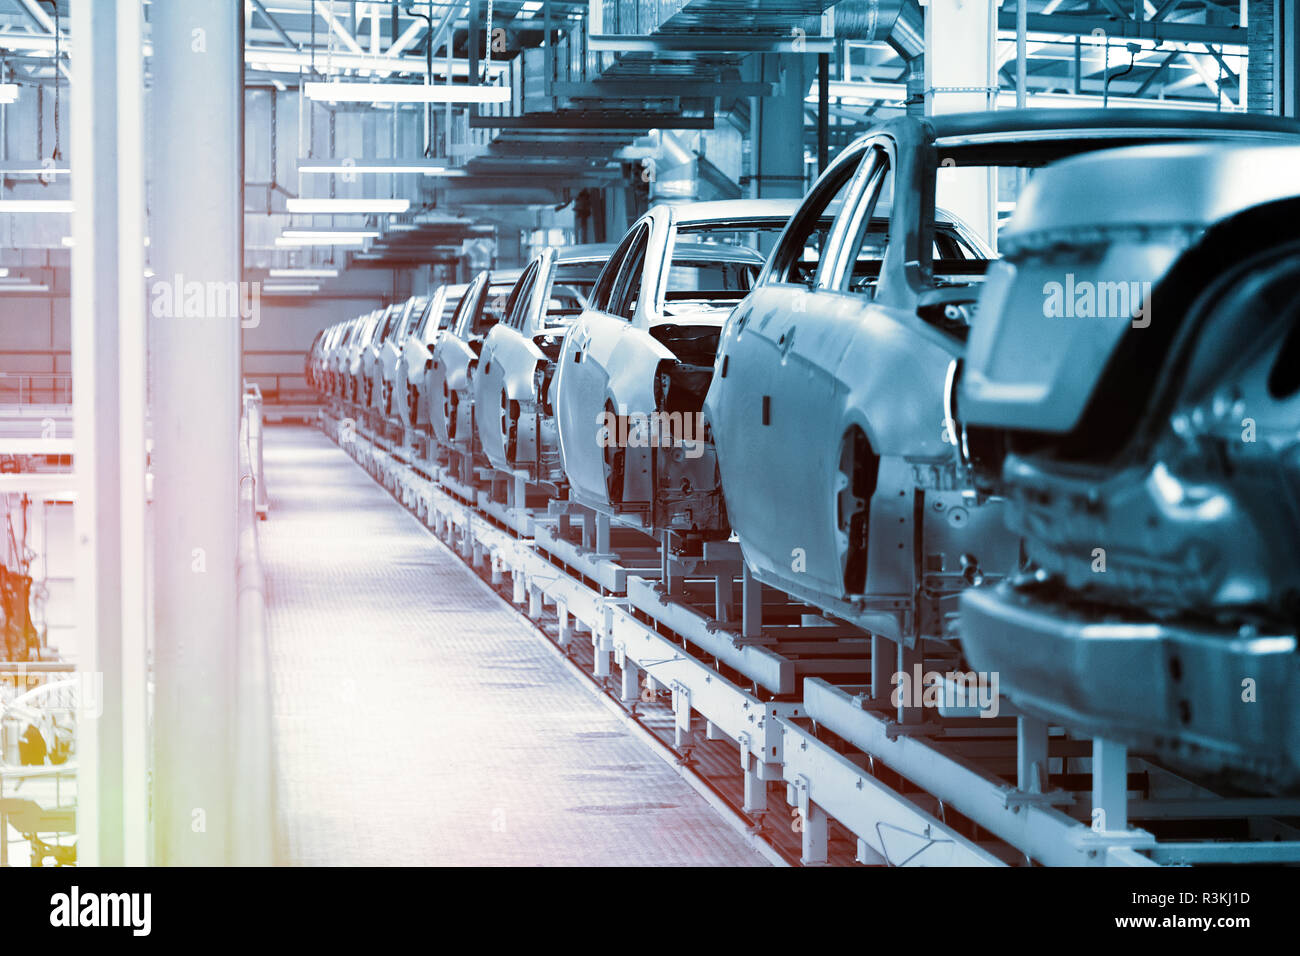 Car bodies are on Assembly line. Factory for production of cars in blue. Modern automotive industry. Blue tone - Stock Image